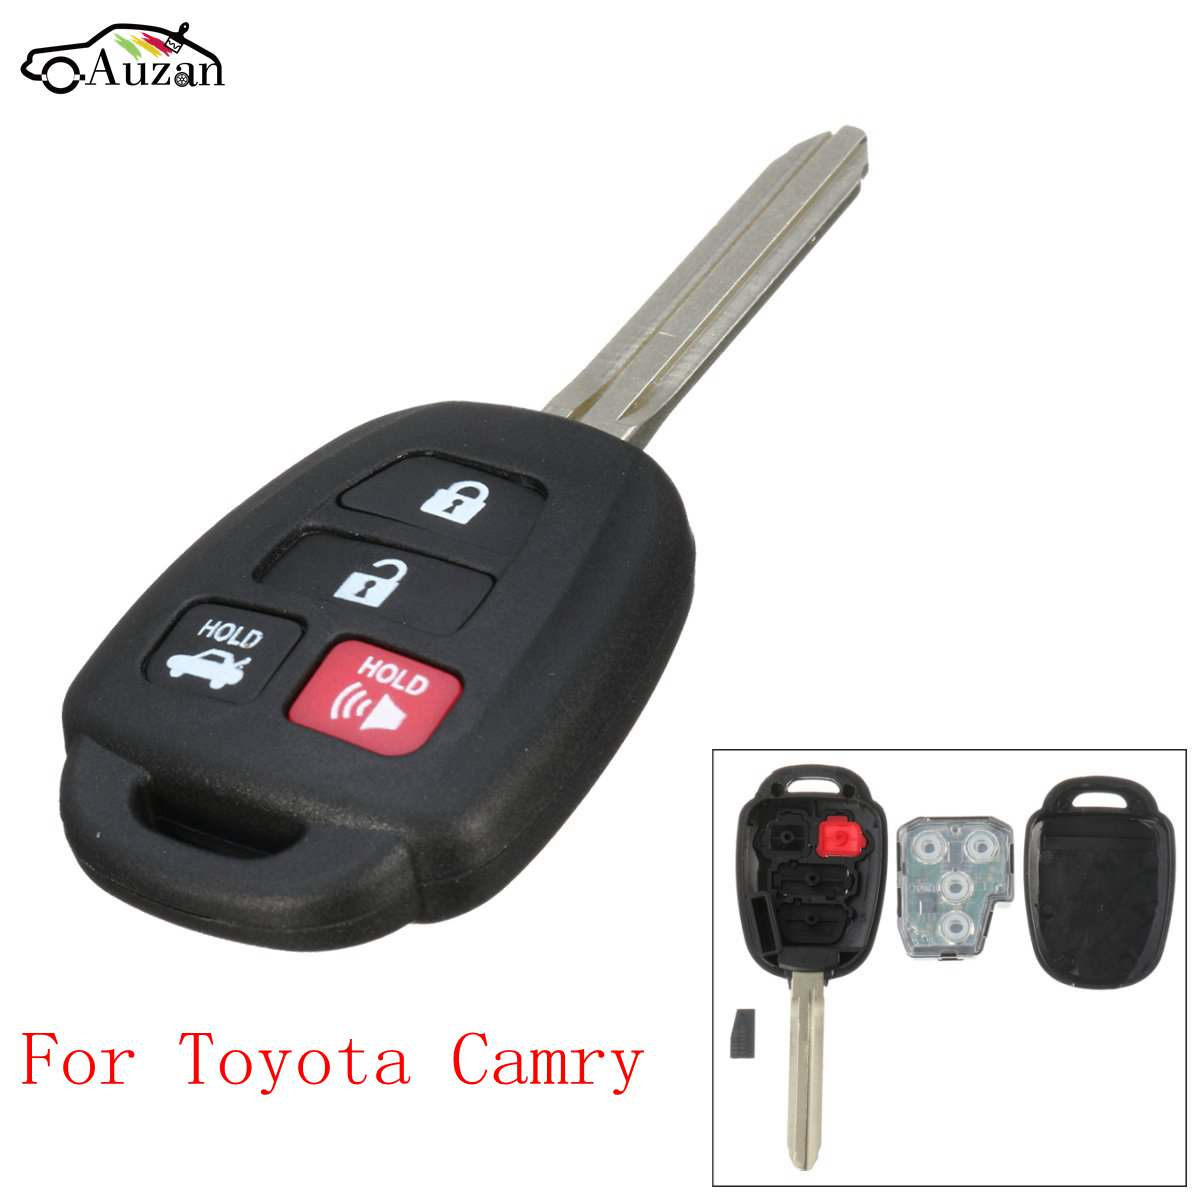 4 button 315hmz keyless entry remote key fob hyq12bdm uncut for toyota camry 2012 2013